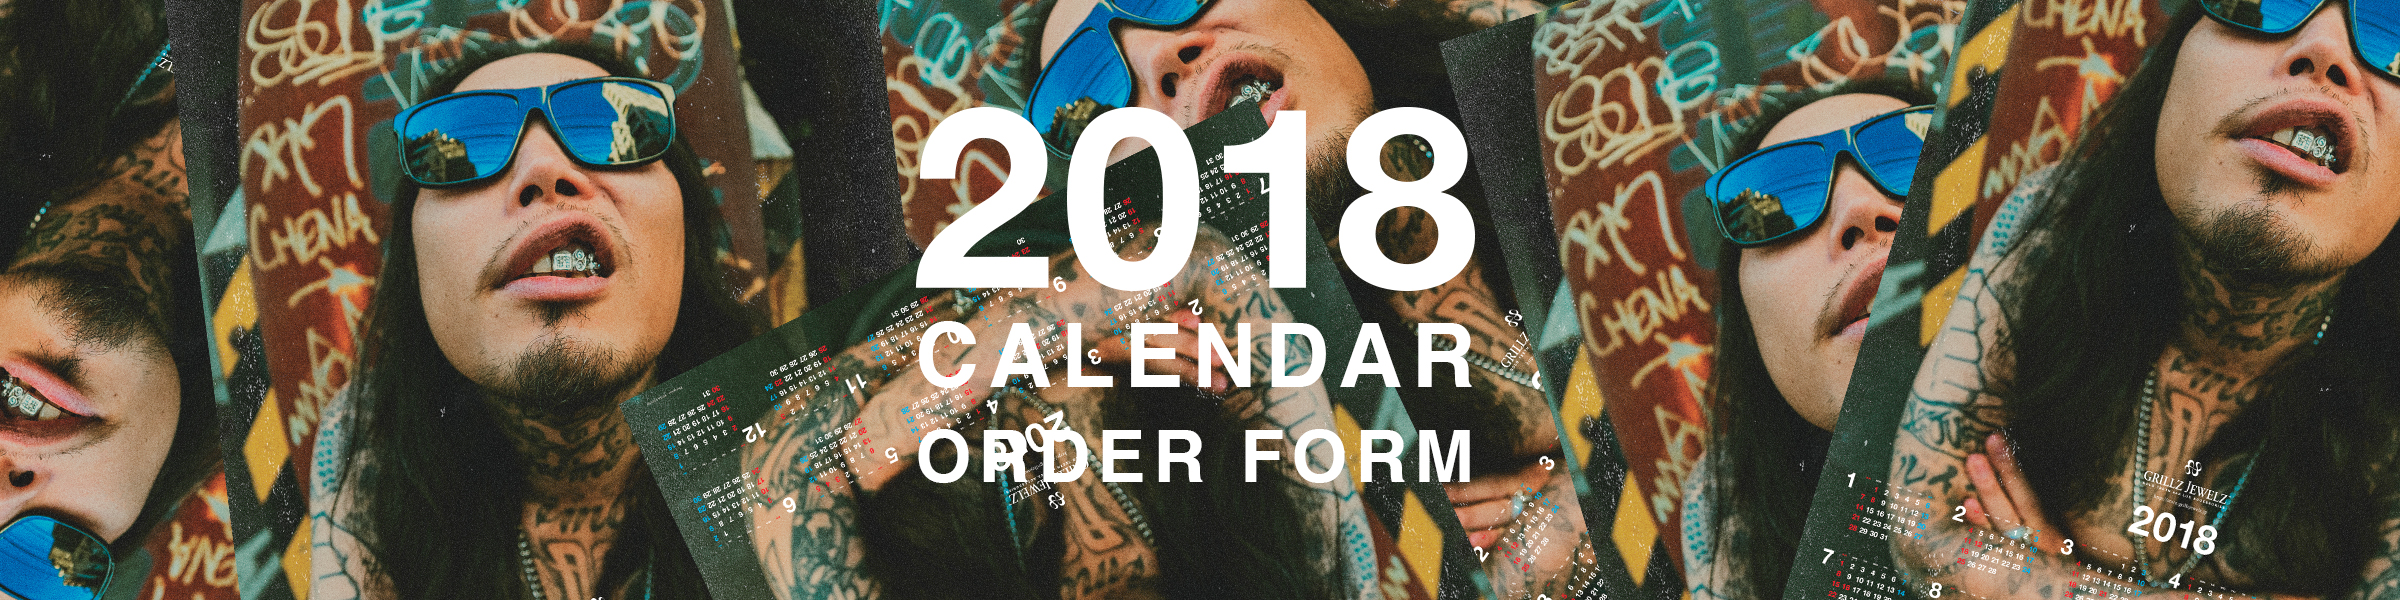 GRILLZ JEWELZ 2018 CALENDAR ORDER FORM